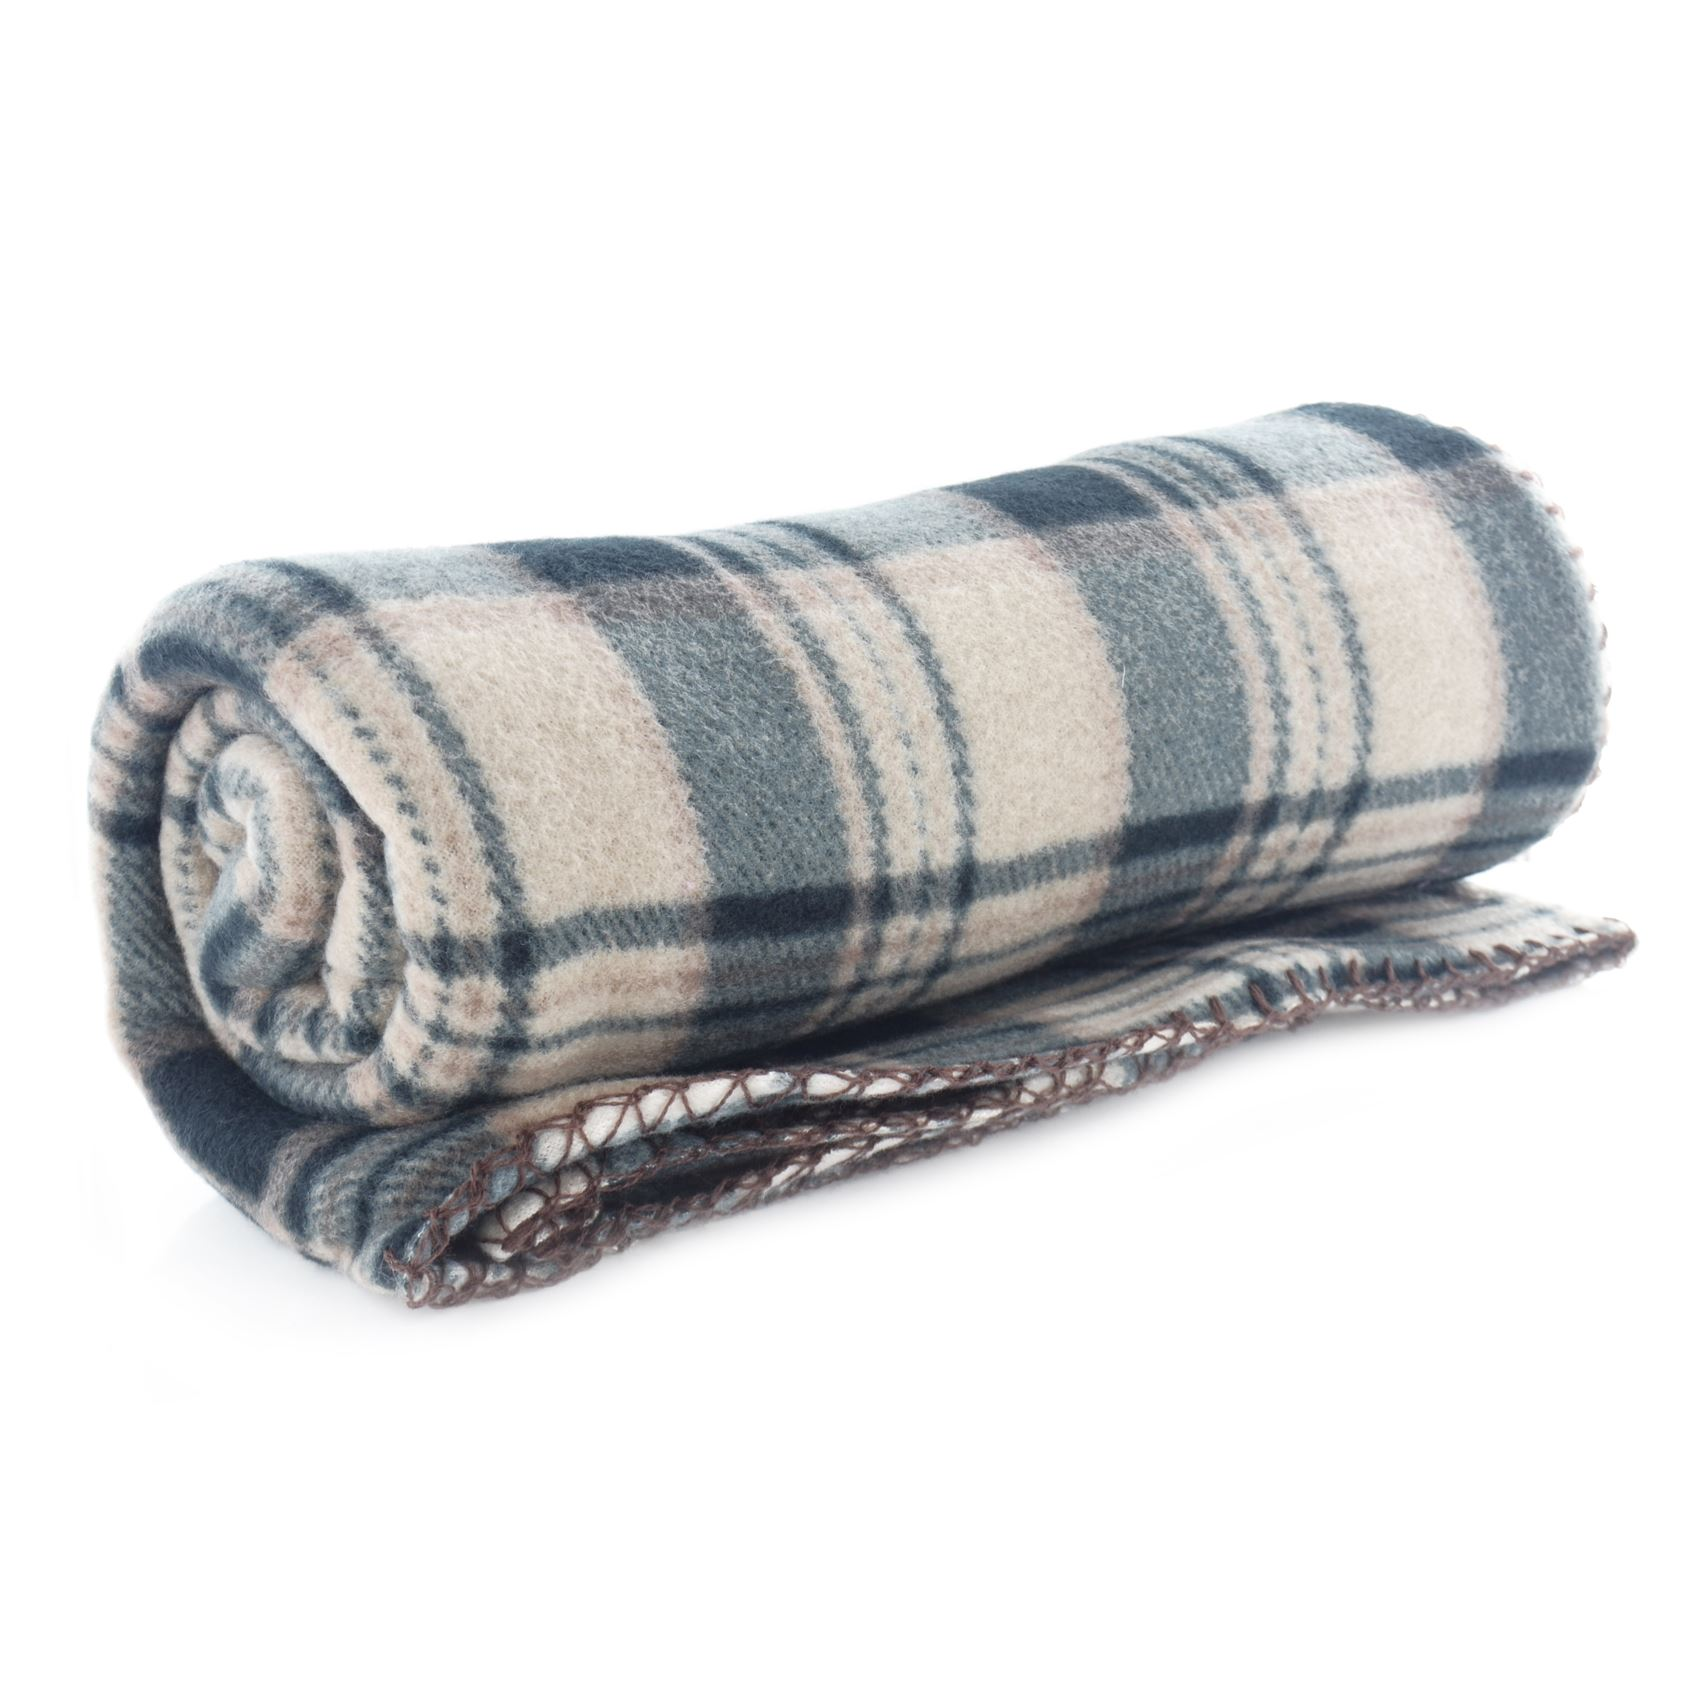 New Luxury Soft Fleece Blanket Warm Bed Sofa Throw Polar Travel